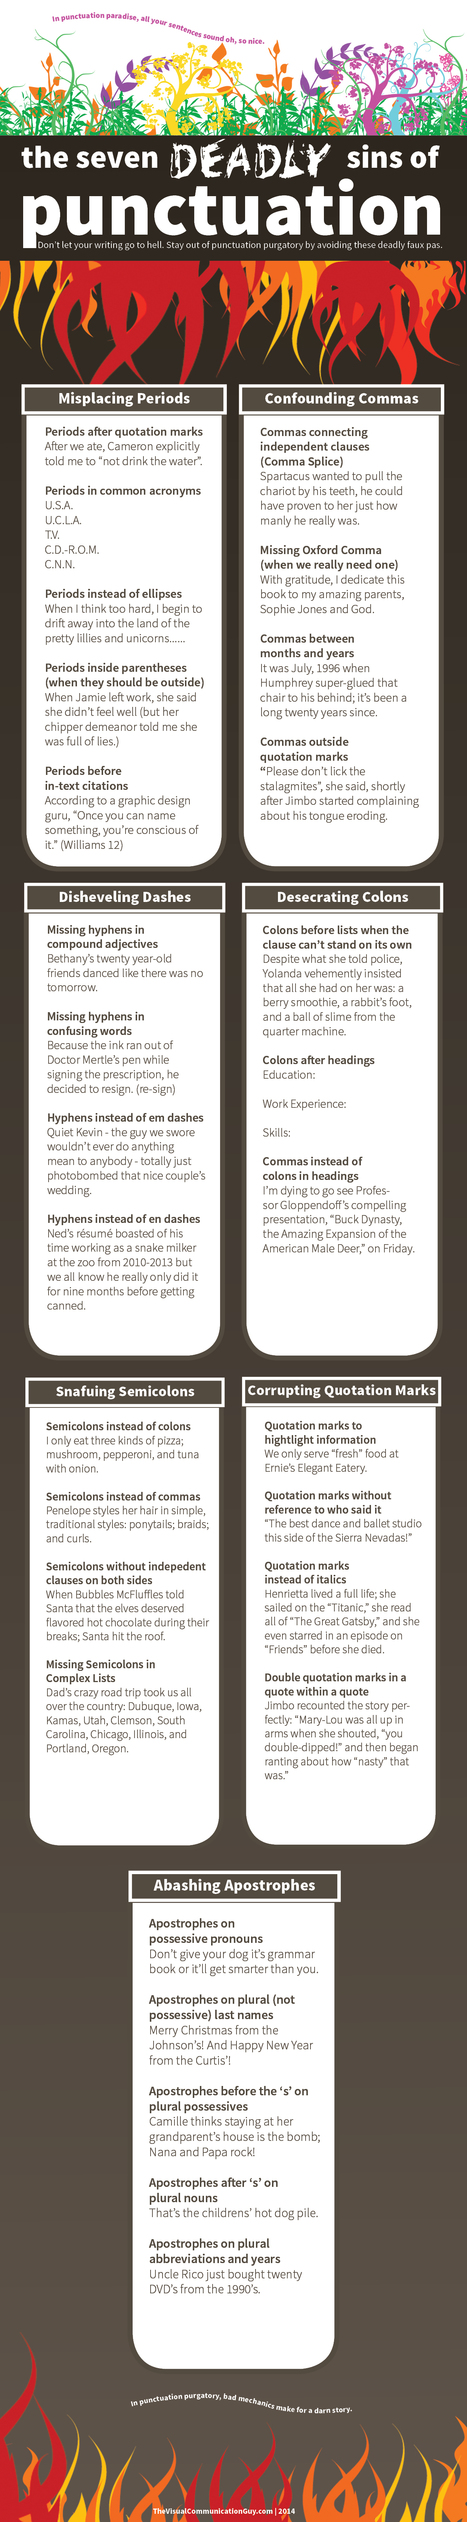 The Seven Deadly Sins of Punctuation - Infographic | Education | Scoop.it